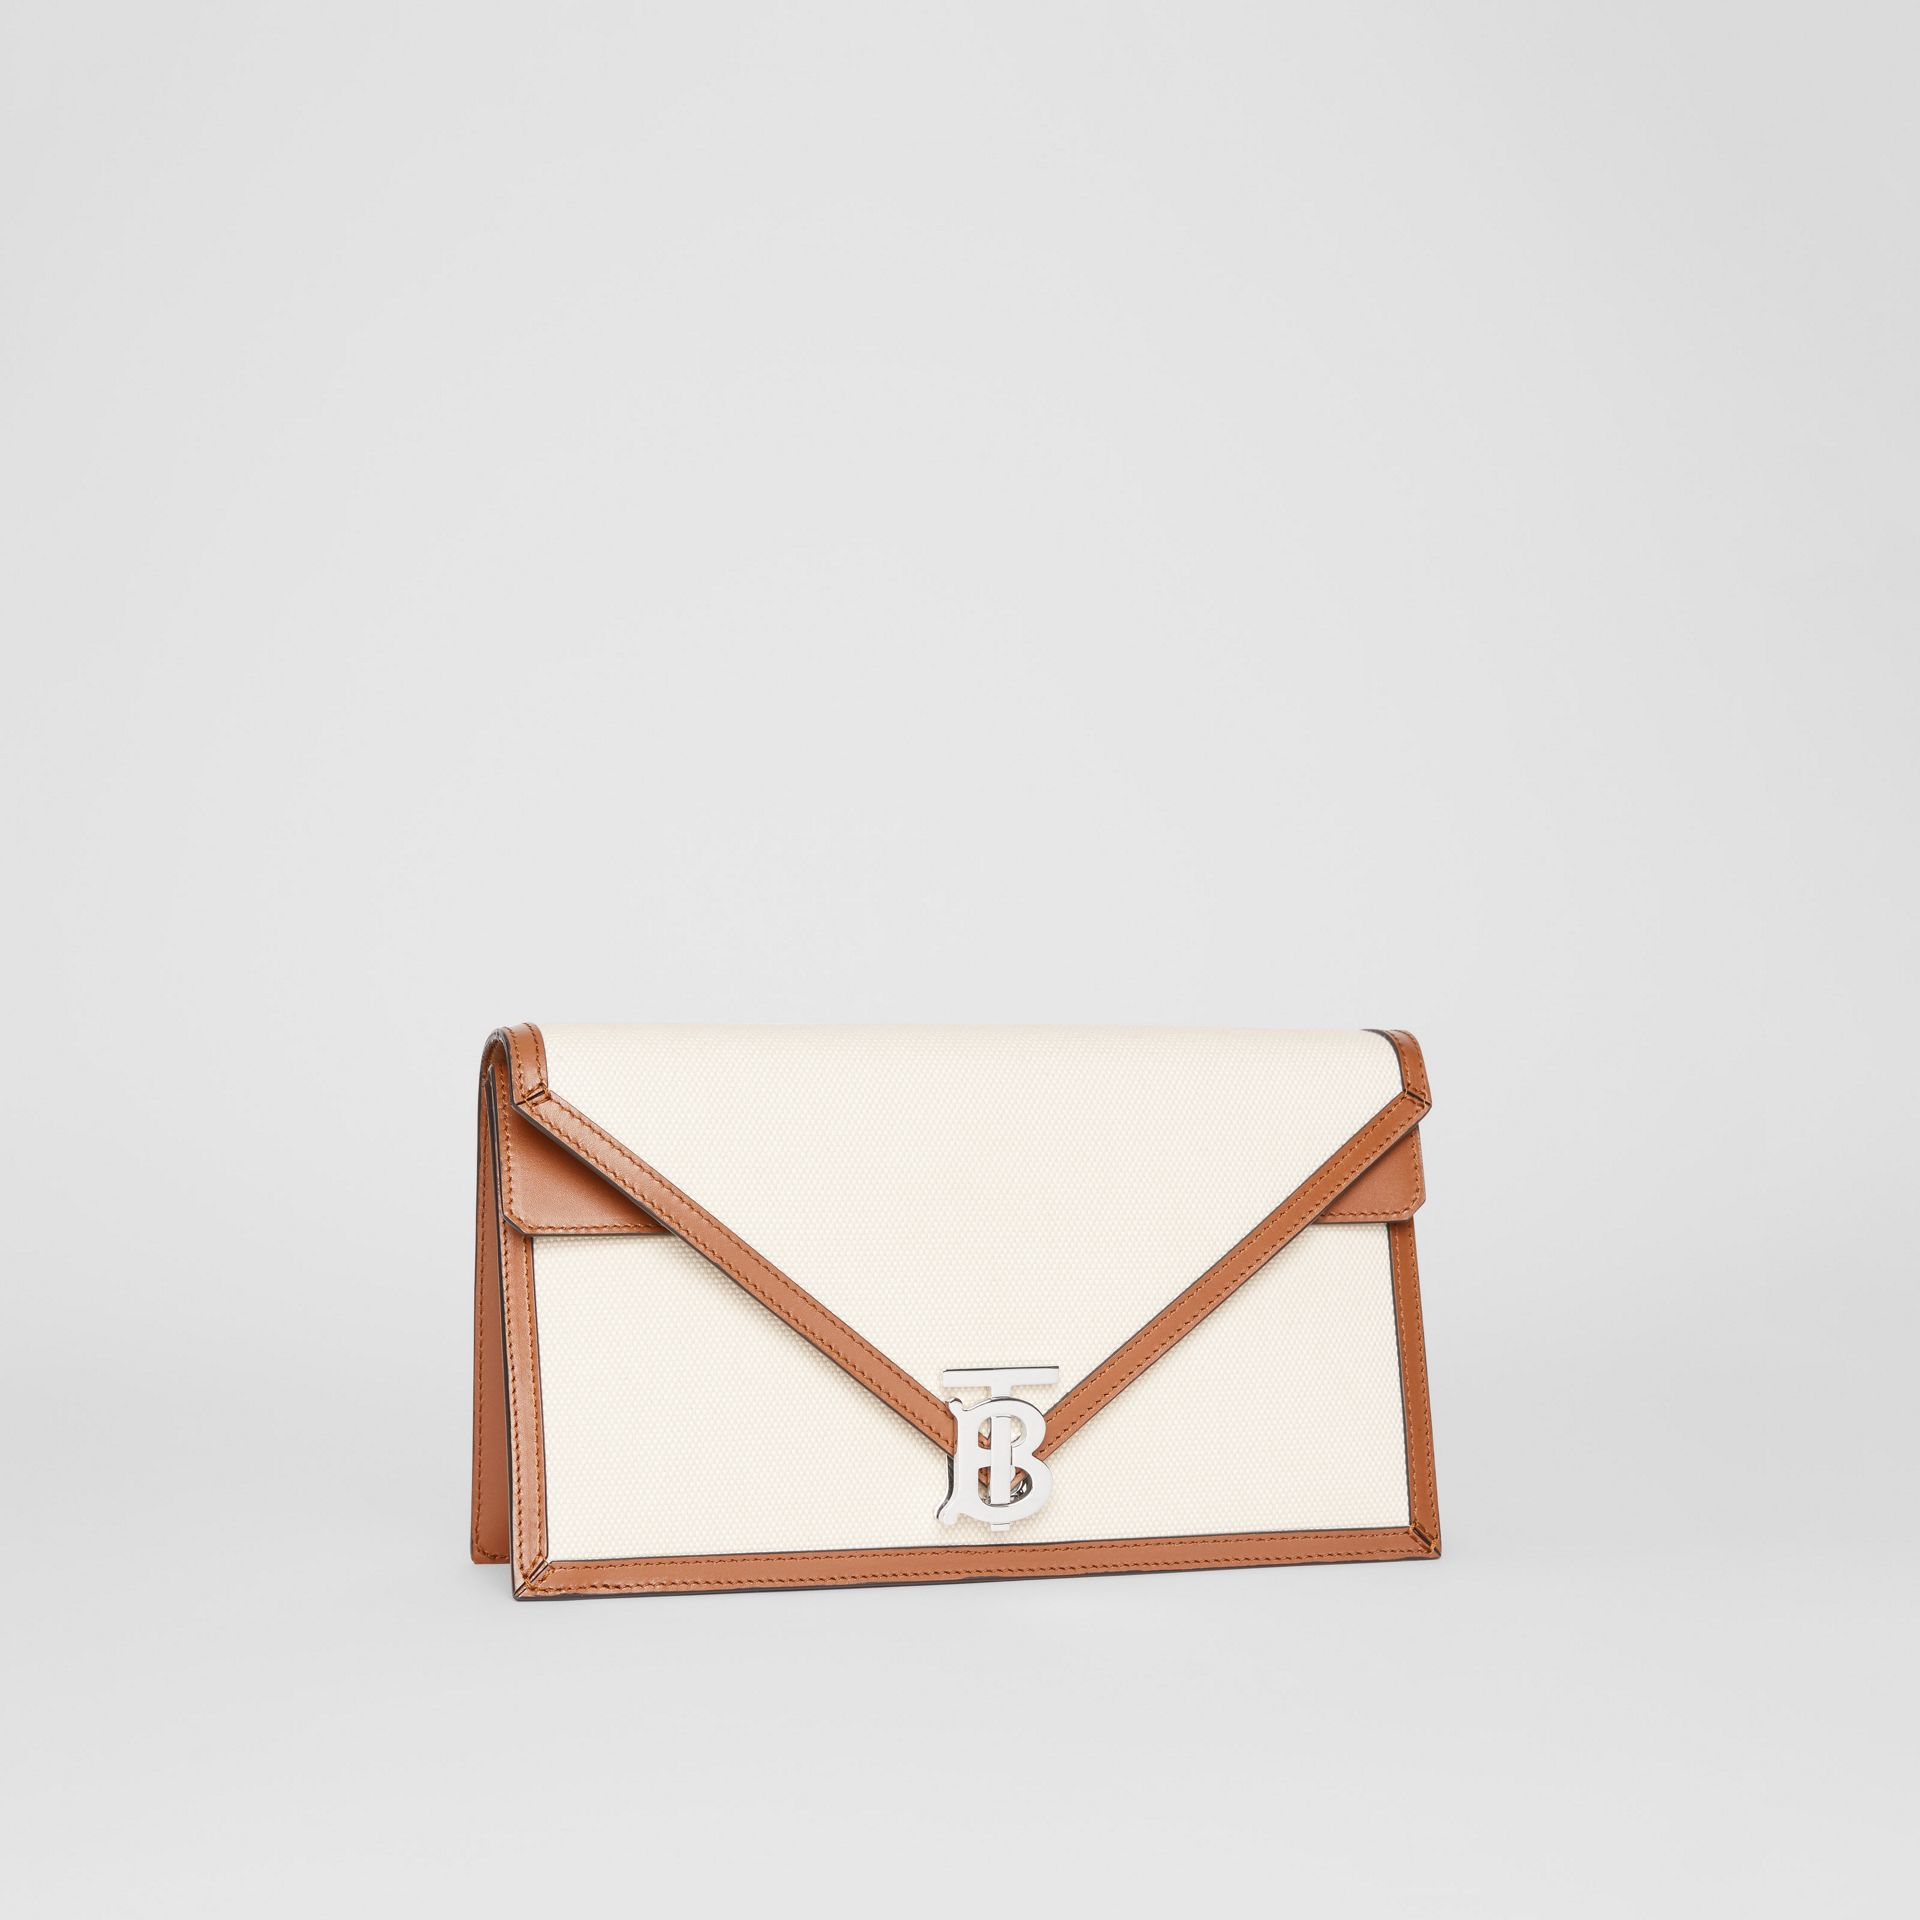 Small Canvas and Leather TB Envelope Clutch in Natural - Women | Burberry Canada - gallery image 5